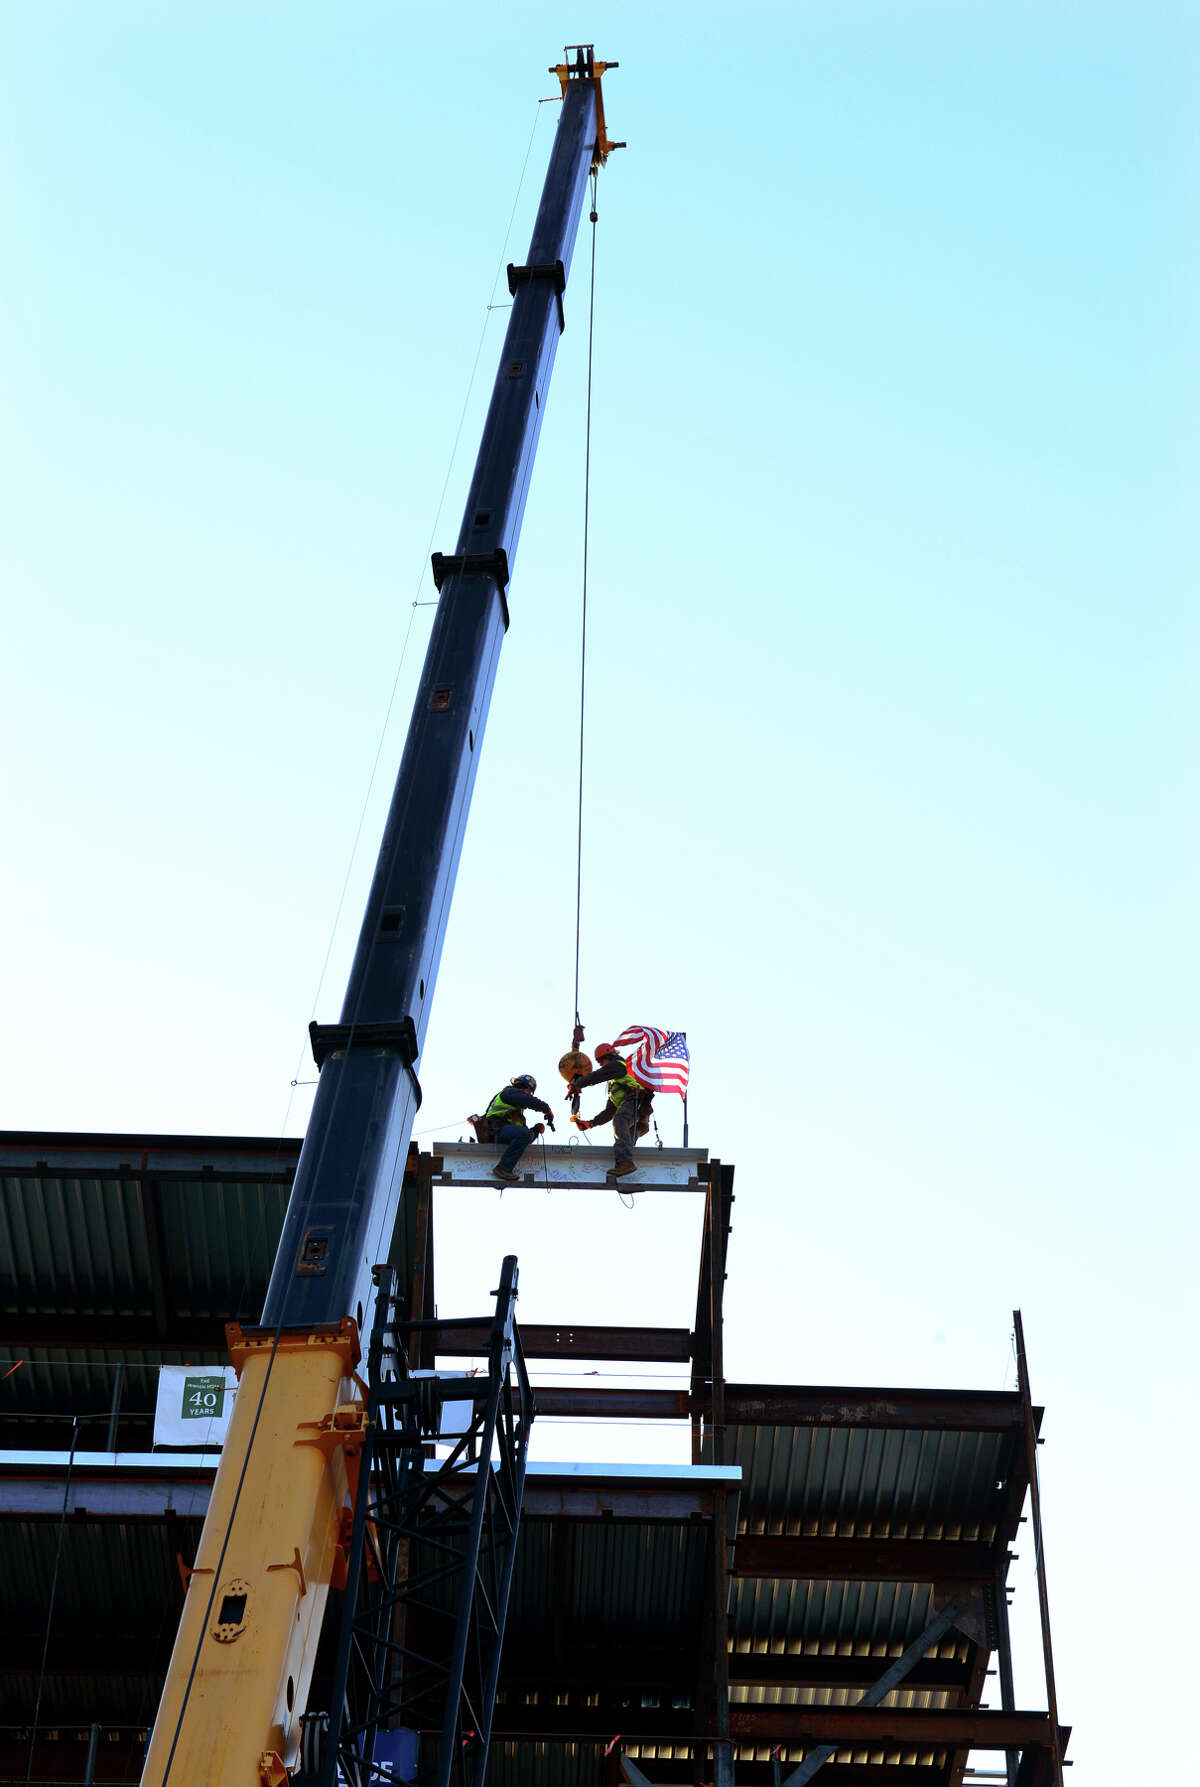 The final steel beam for the new $75 million, 372,000 square foot Jewish Senior Services is put into place by steel workers Joe Plourde, left, and Paul Moore III, at the new site on Park Avenue in Bridgeport, Conn. on Thursday Jan. 24, 2015.